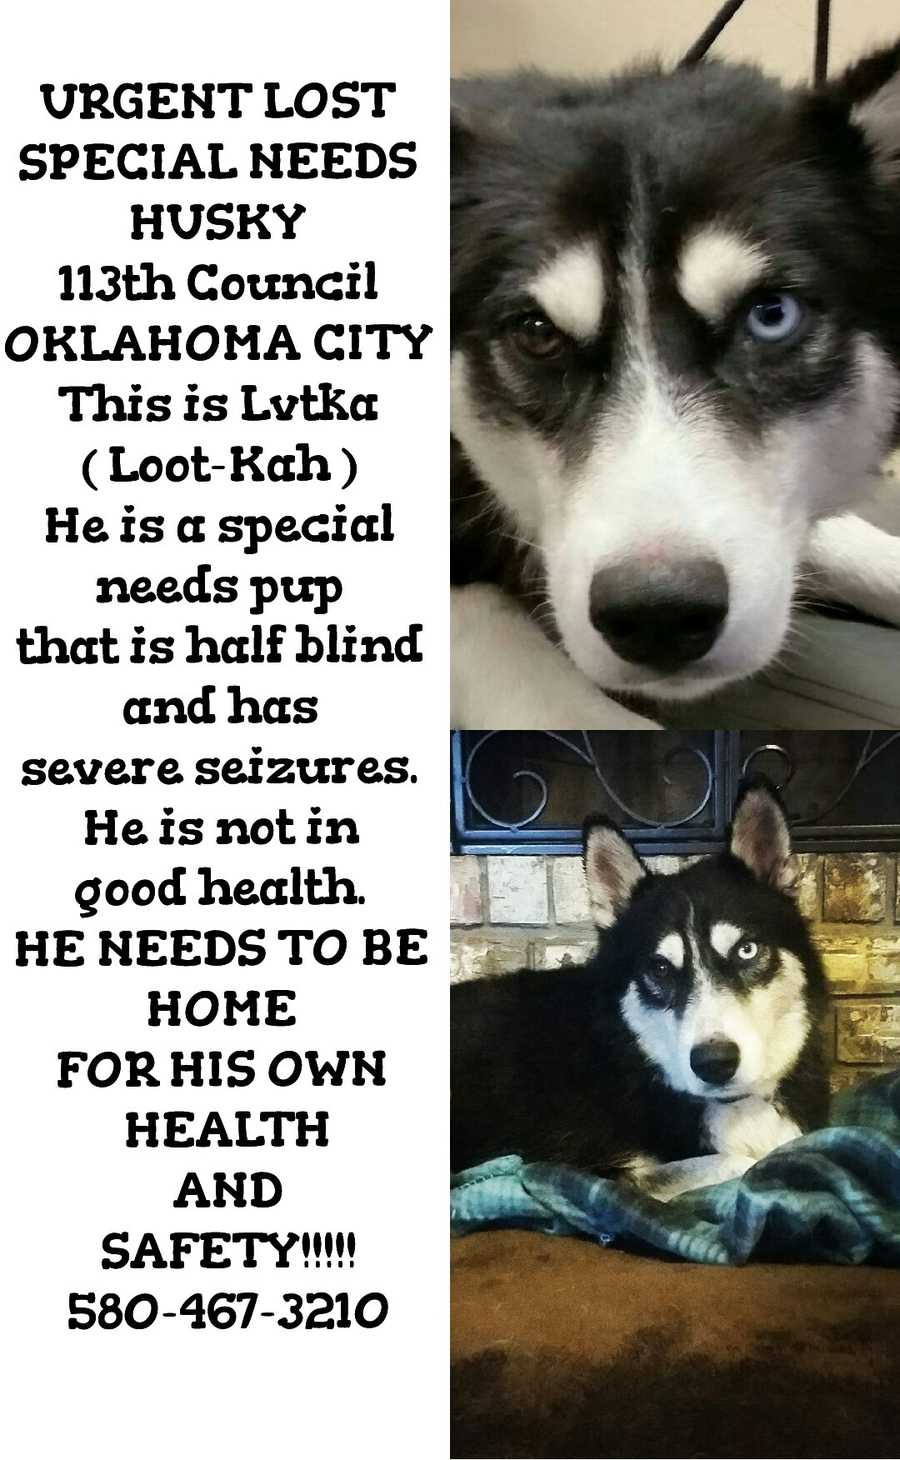 LOST: Lvtka was lost near 113th and Council. He is a special needs puppy who needs medication.